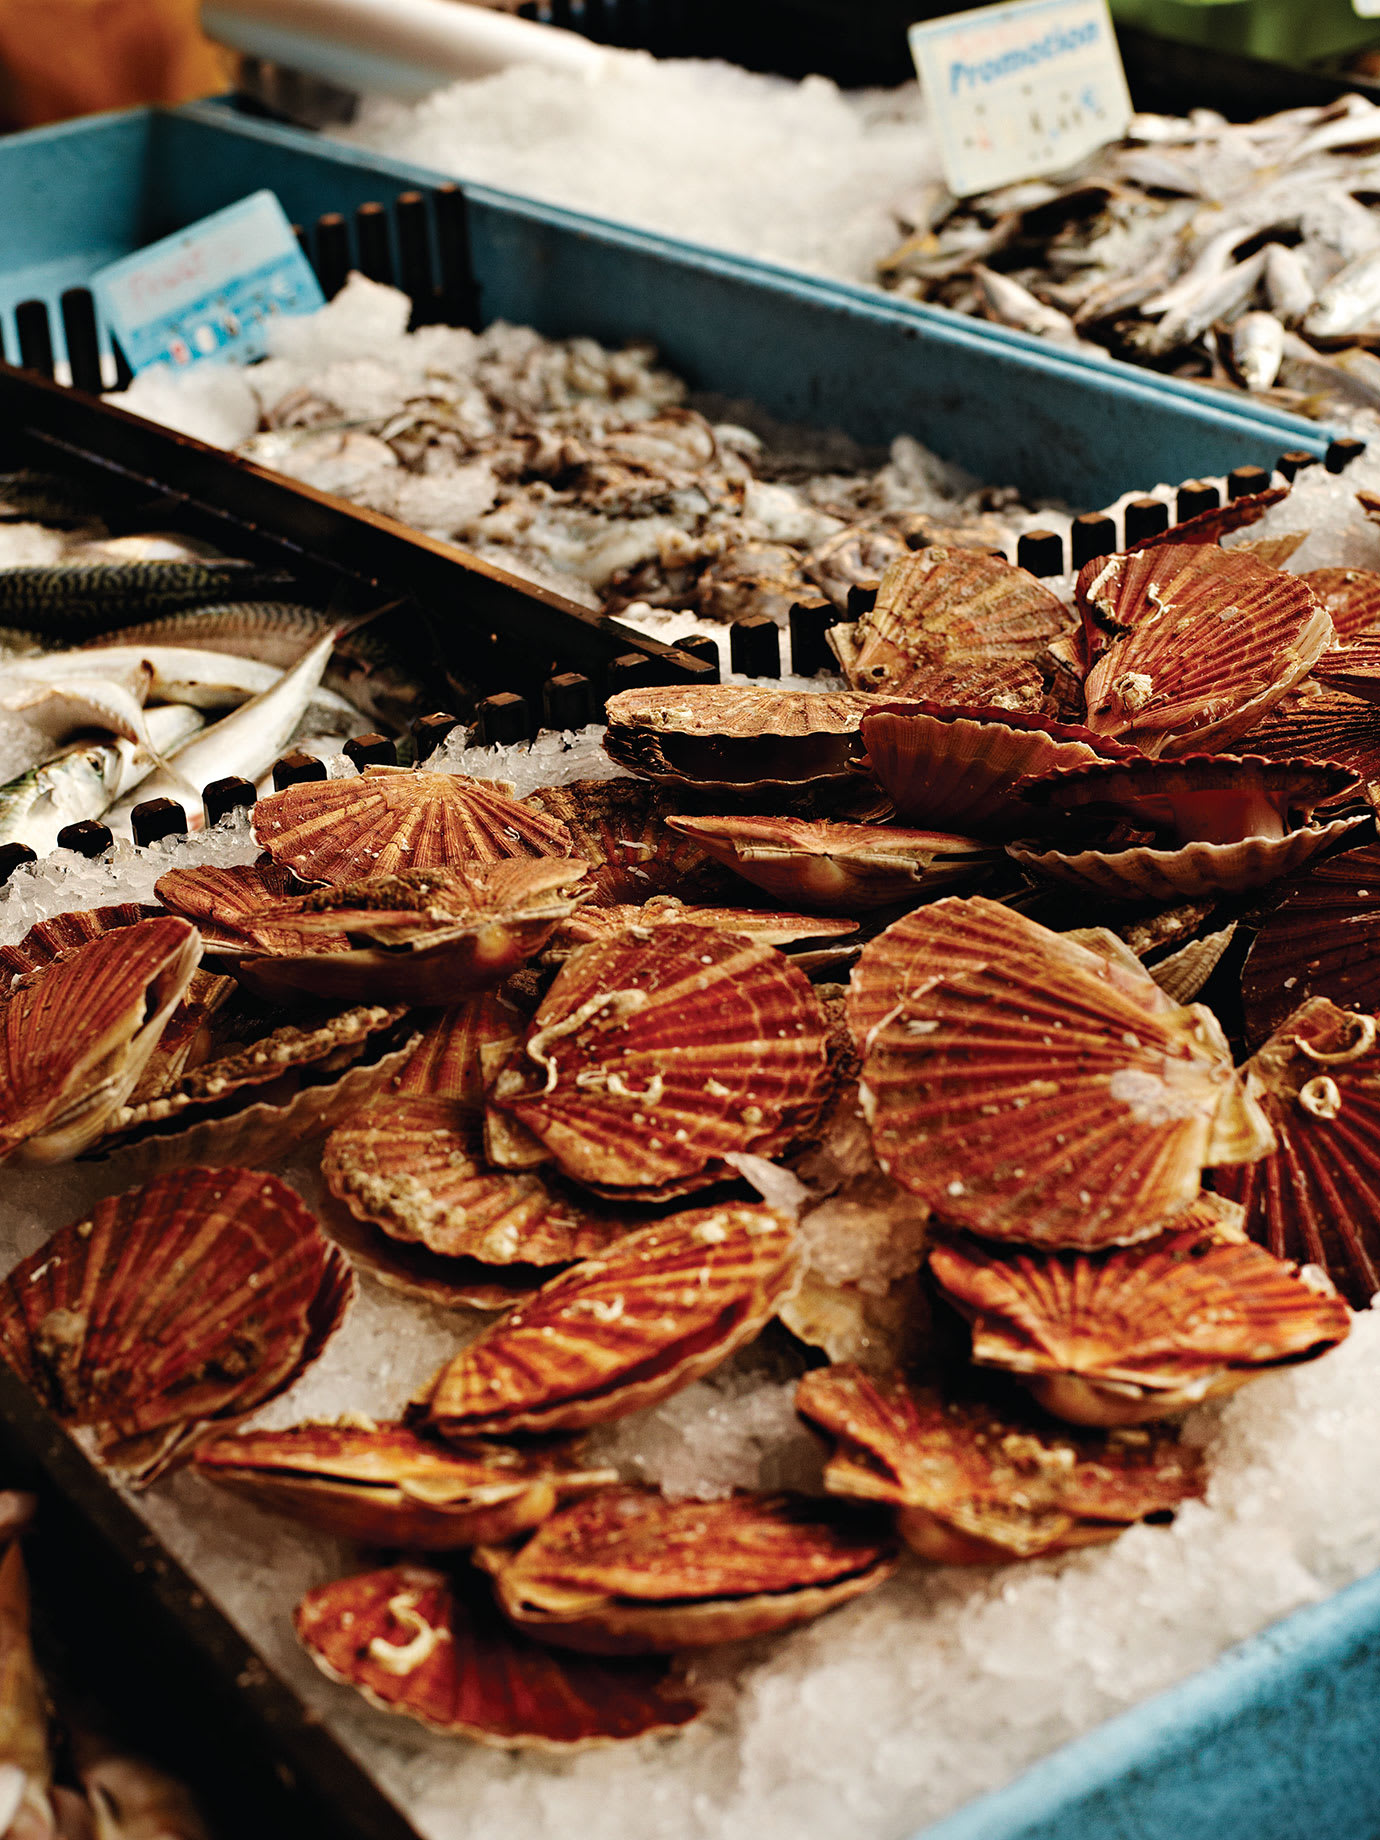 Oyster shells for sale in a market.